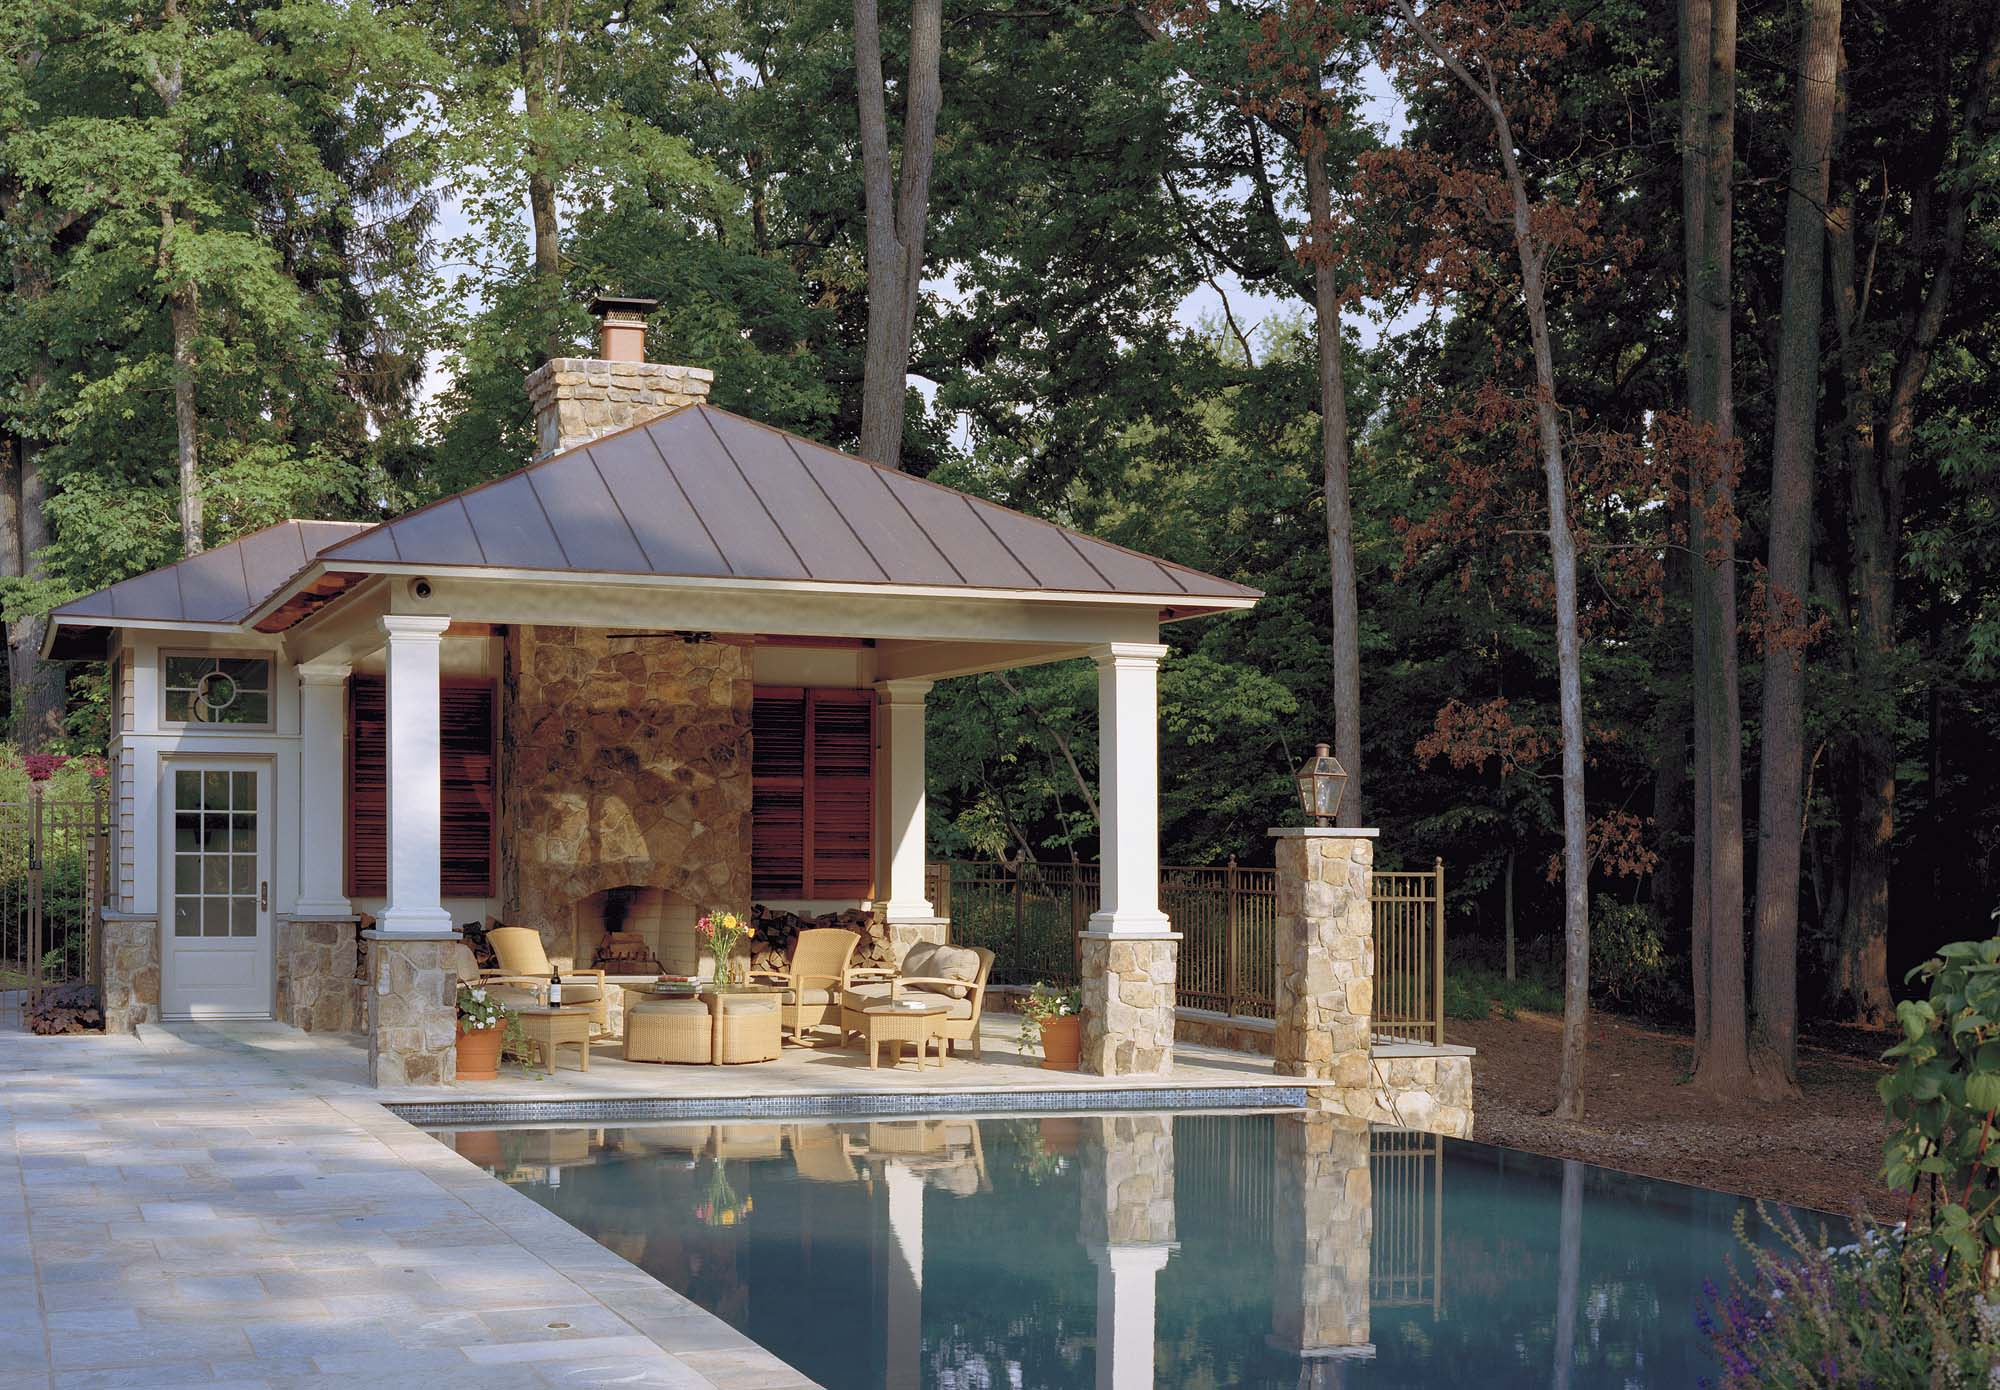 beautiful small pool house design real stone chimney outdoor fireplace tile patio columns with stone base